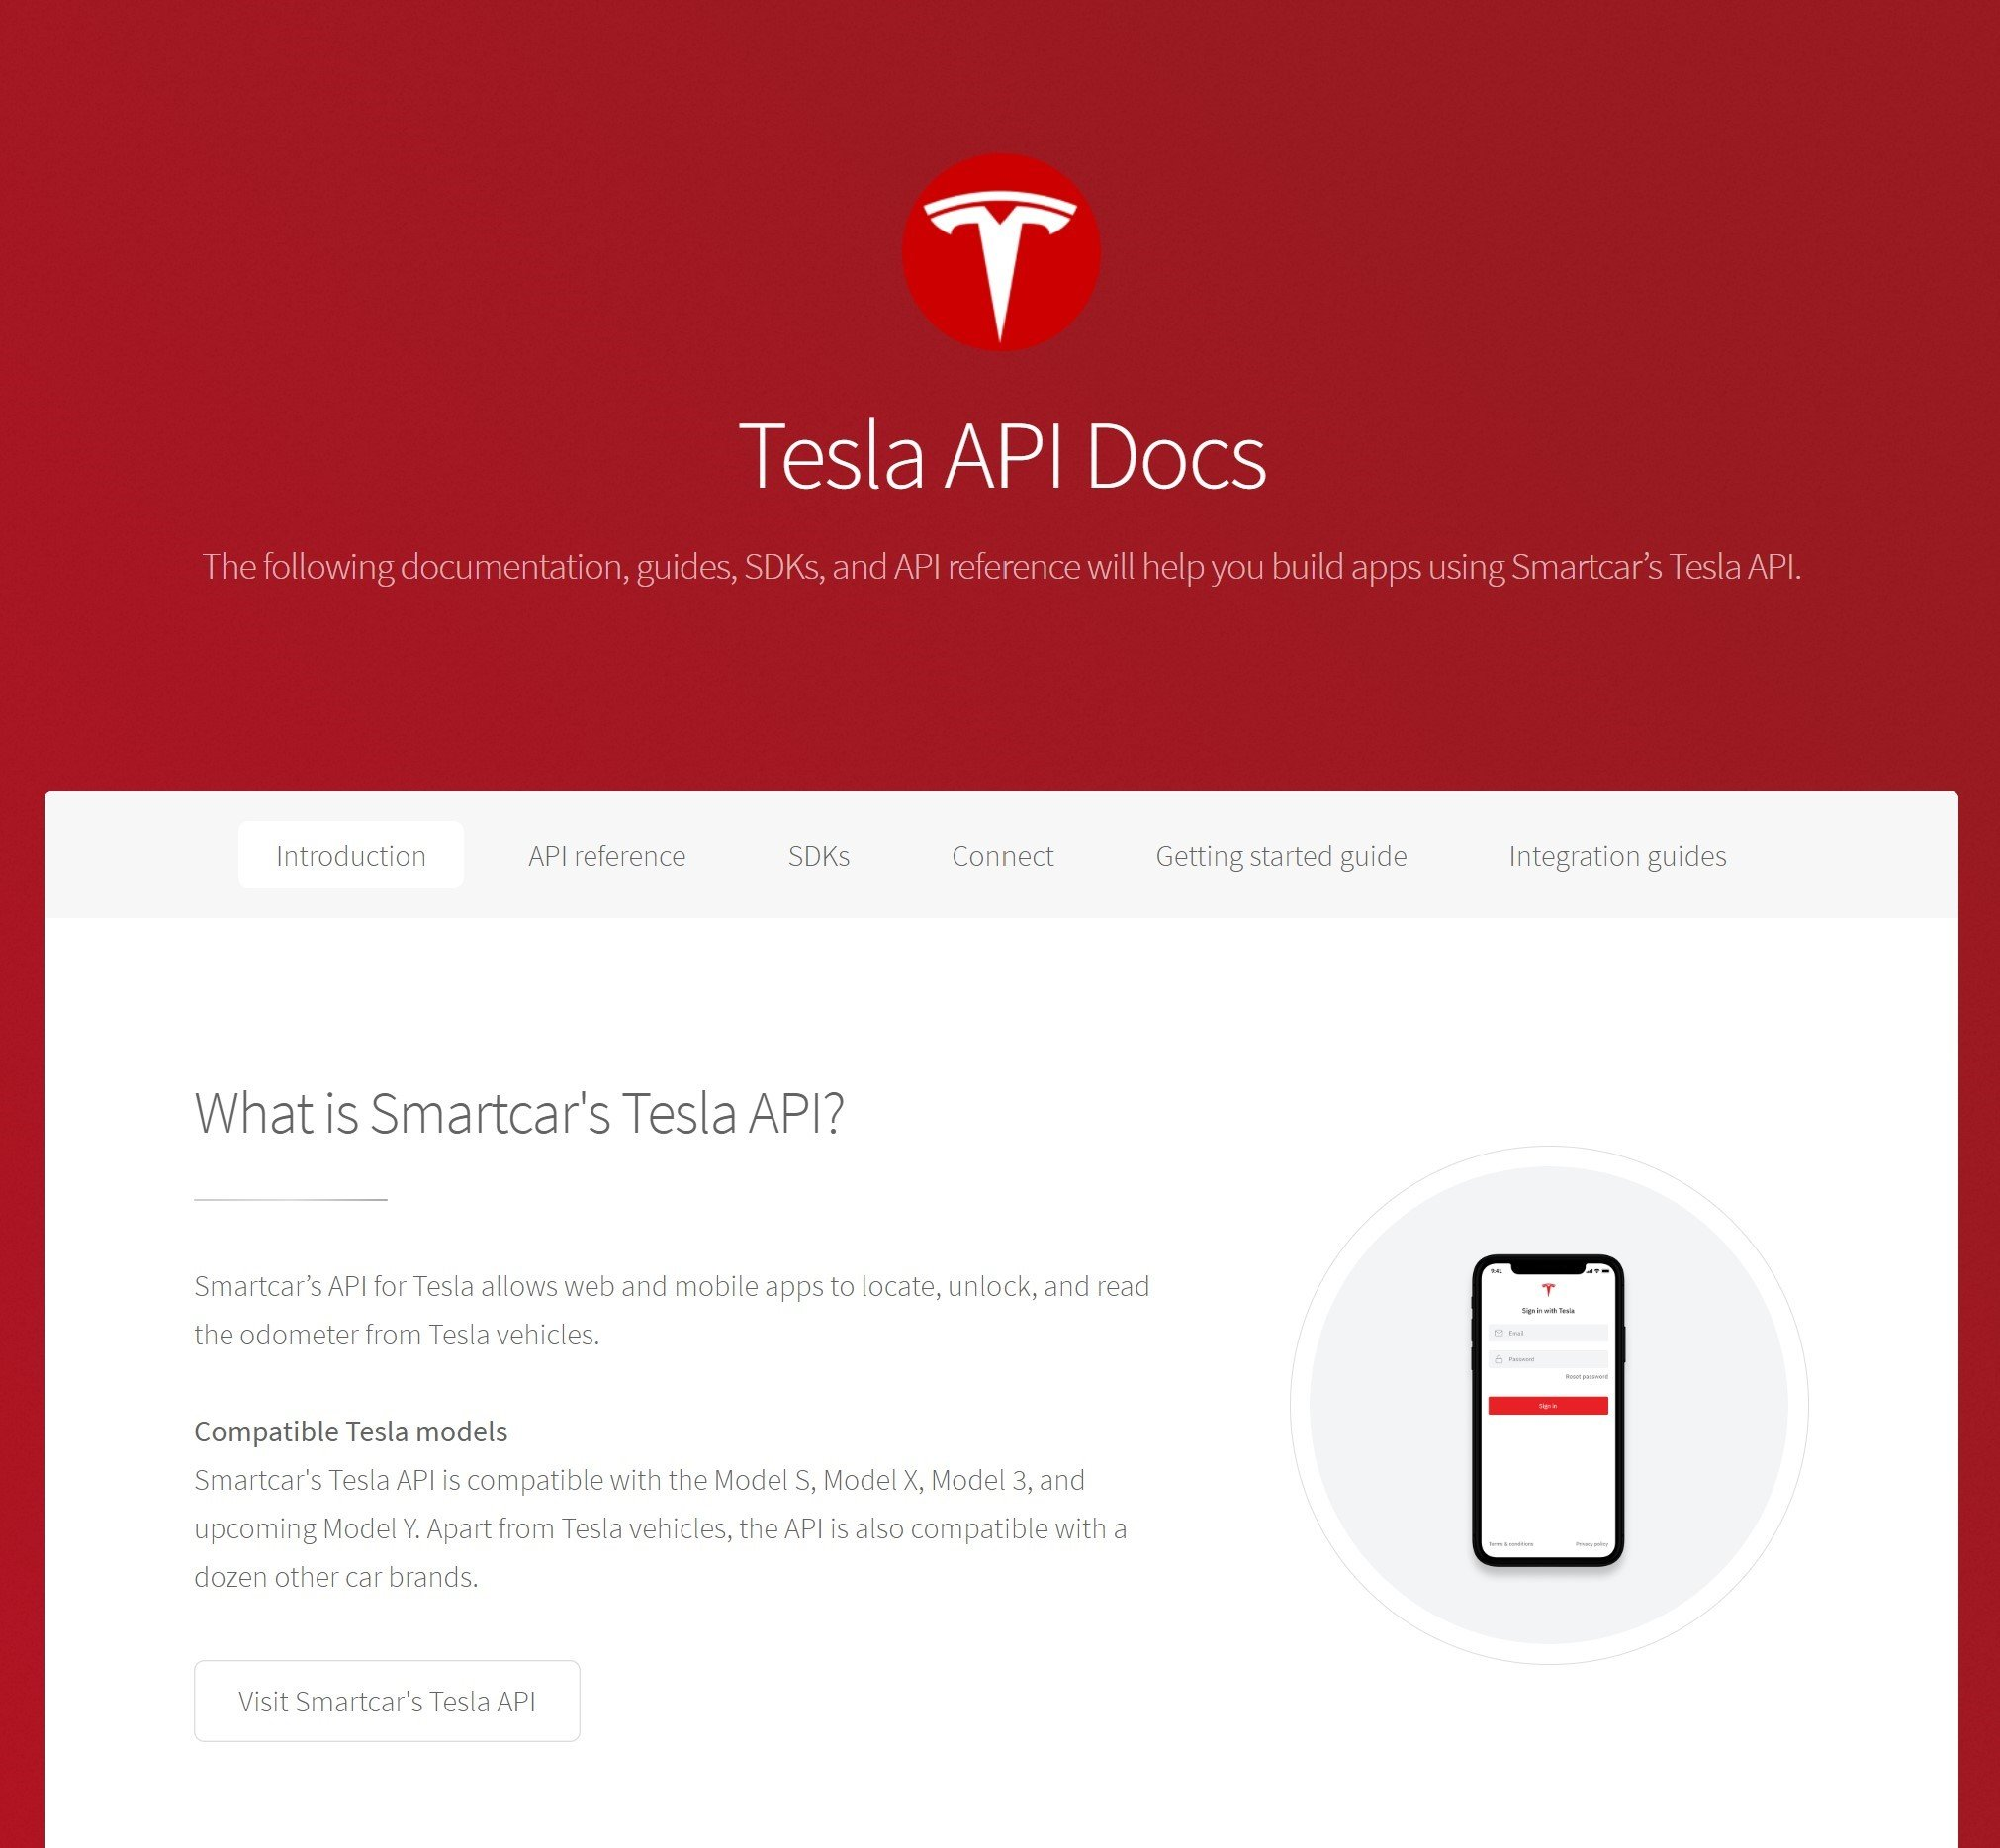 Tesla API Docs Alternatives and Similar Websites and Apps